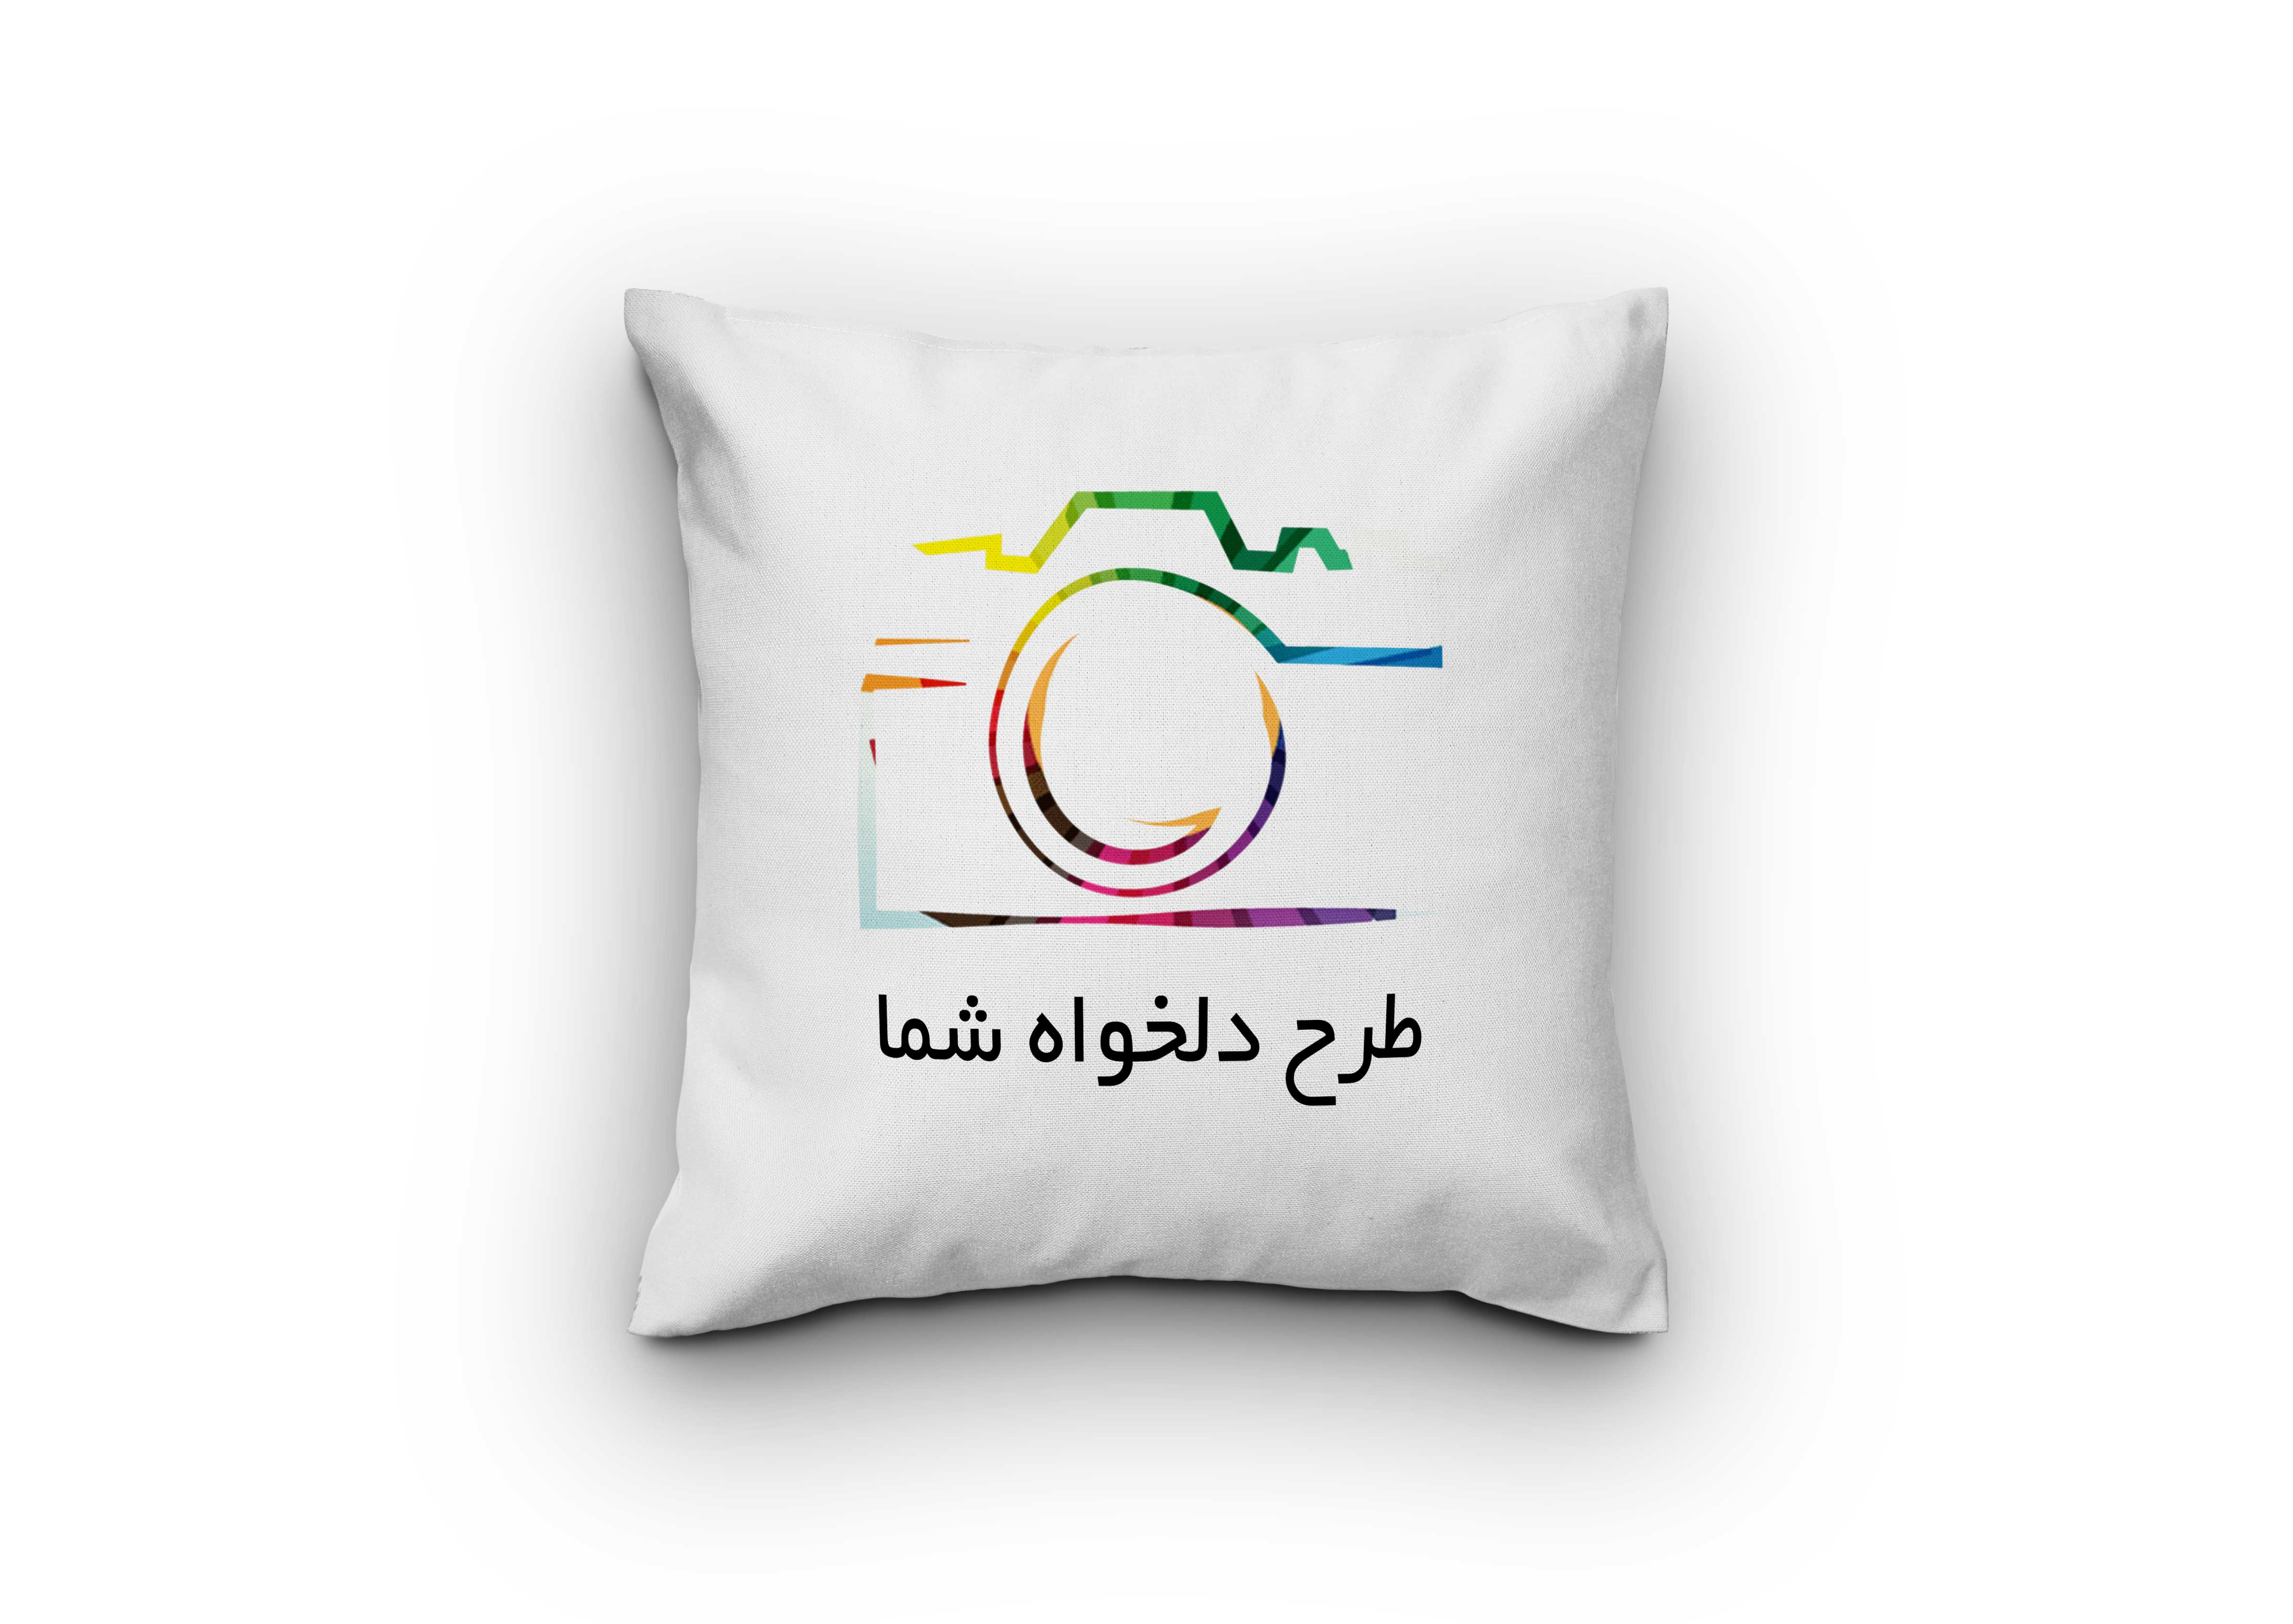 Cushion-Photoshop-Mockup